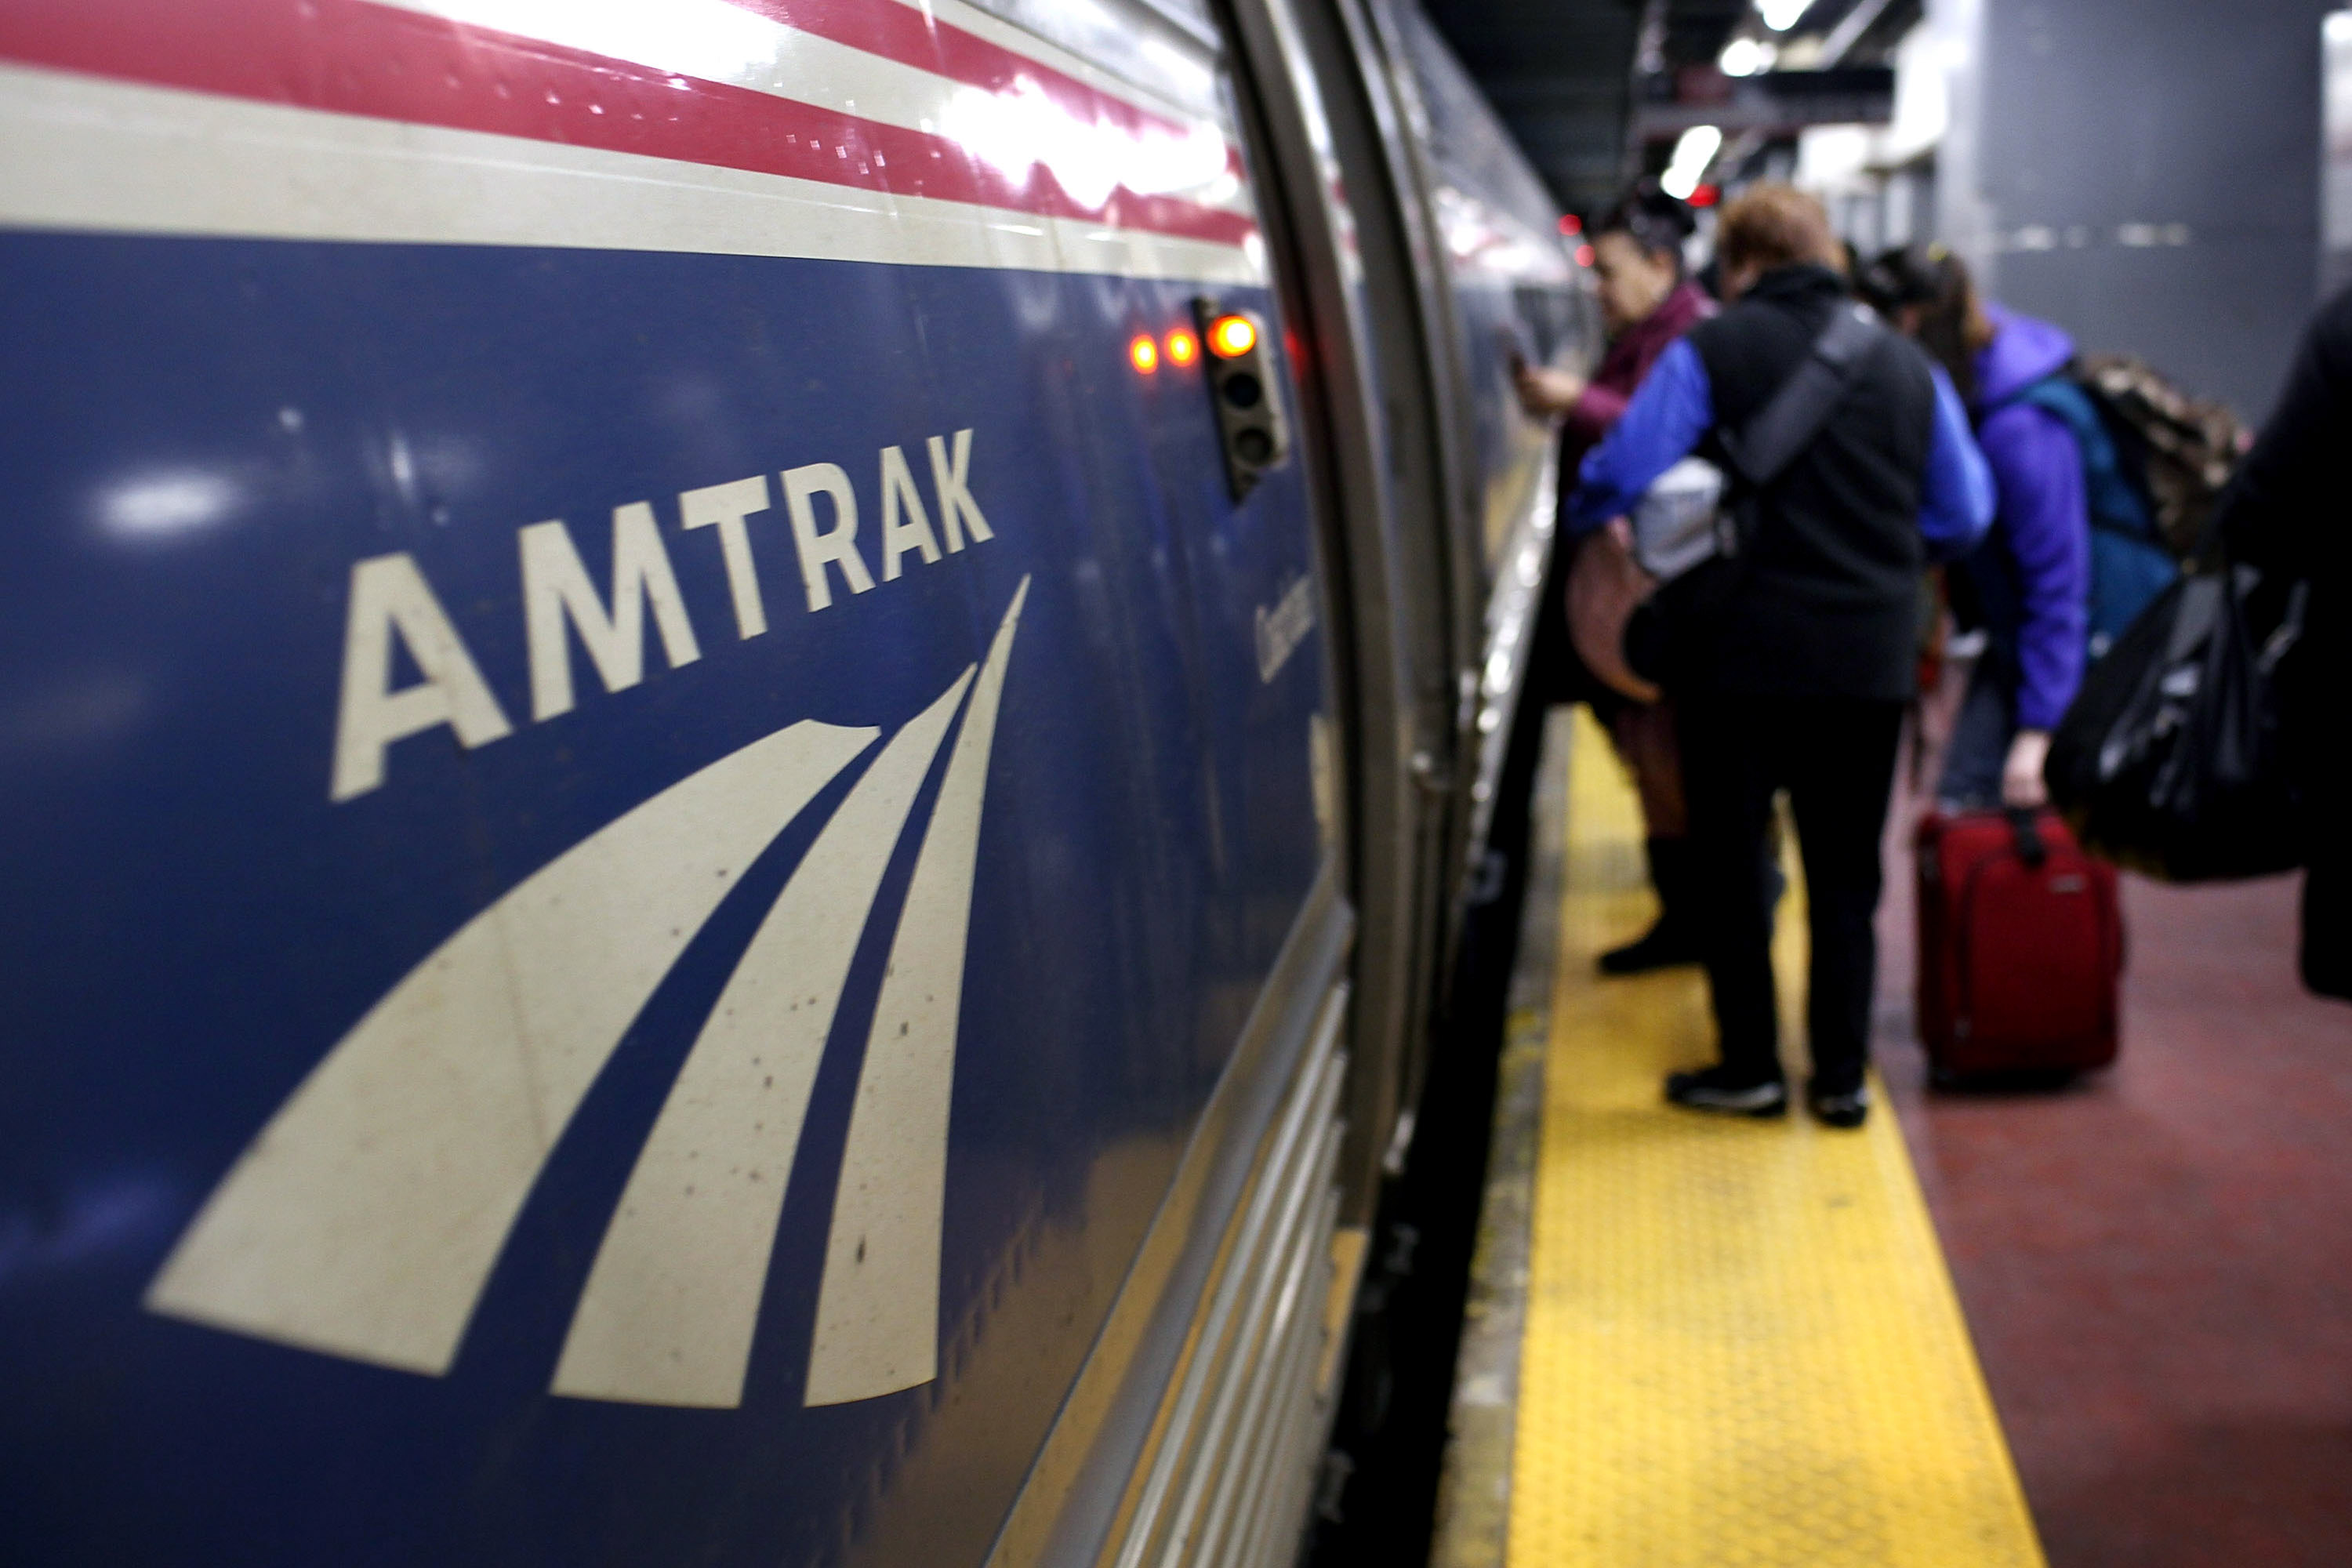 People board an Amtrak train at Penn Station on February 8, 2011 in New York City.  (Photo by Spencer Platt/Getty Images)